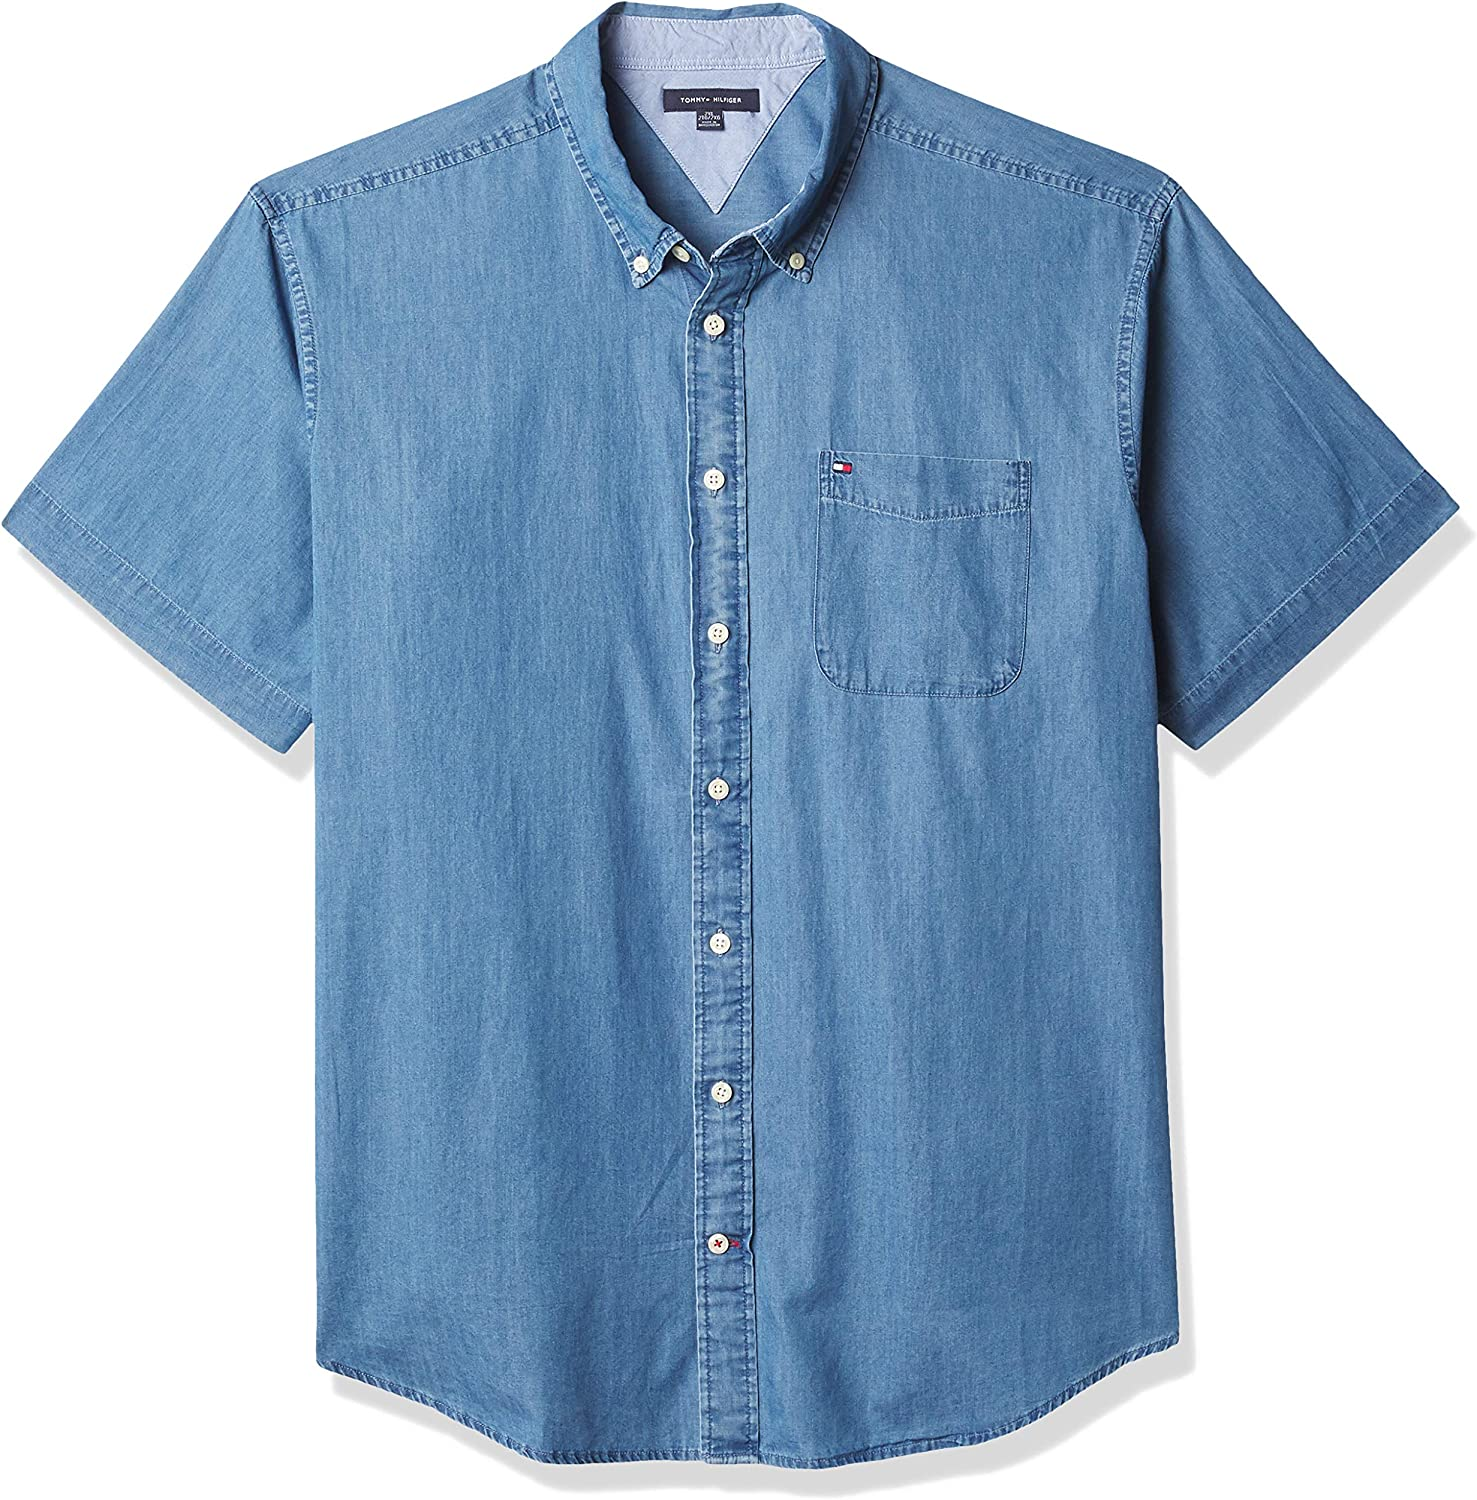 Tommy Hilfiger Big & Tall Men's Big and Tall Short Sleeve Button Down Shirt in Custom Fit